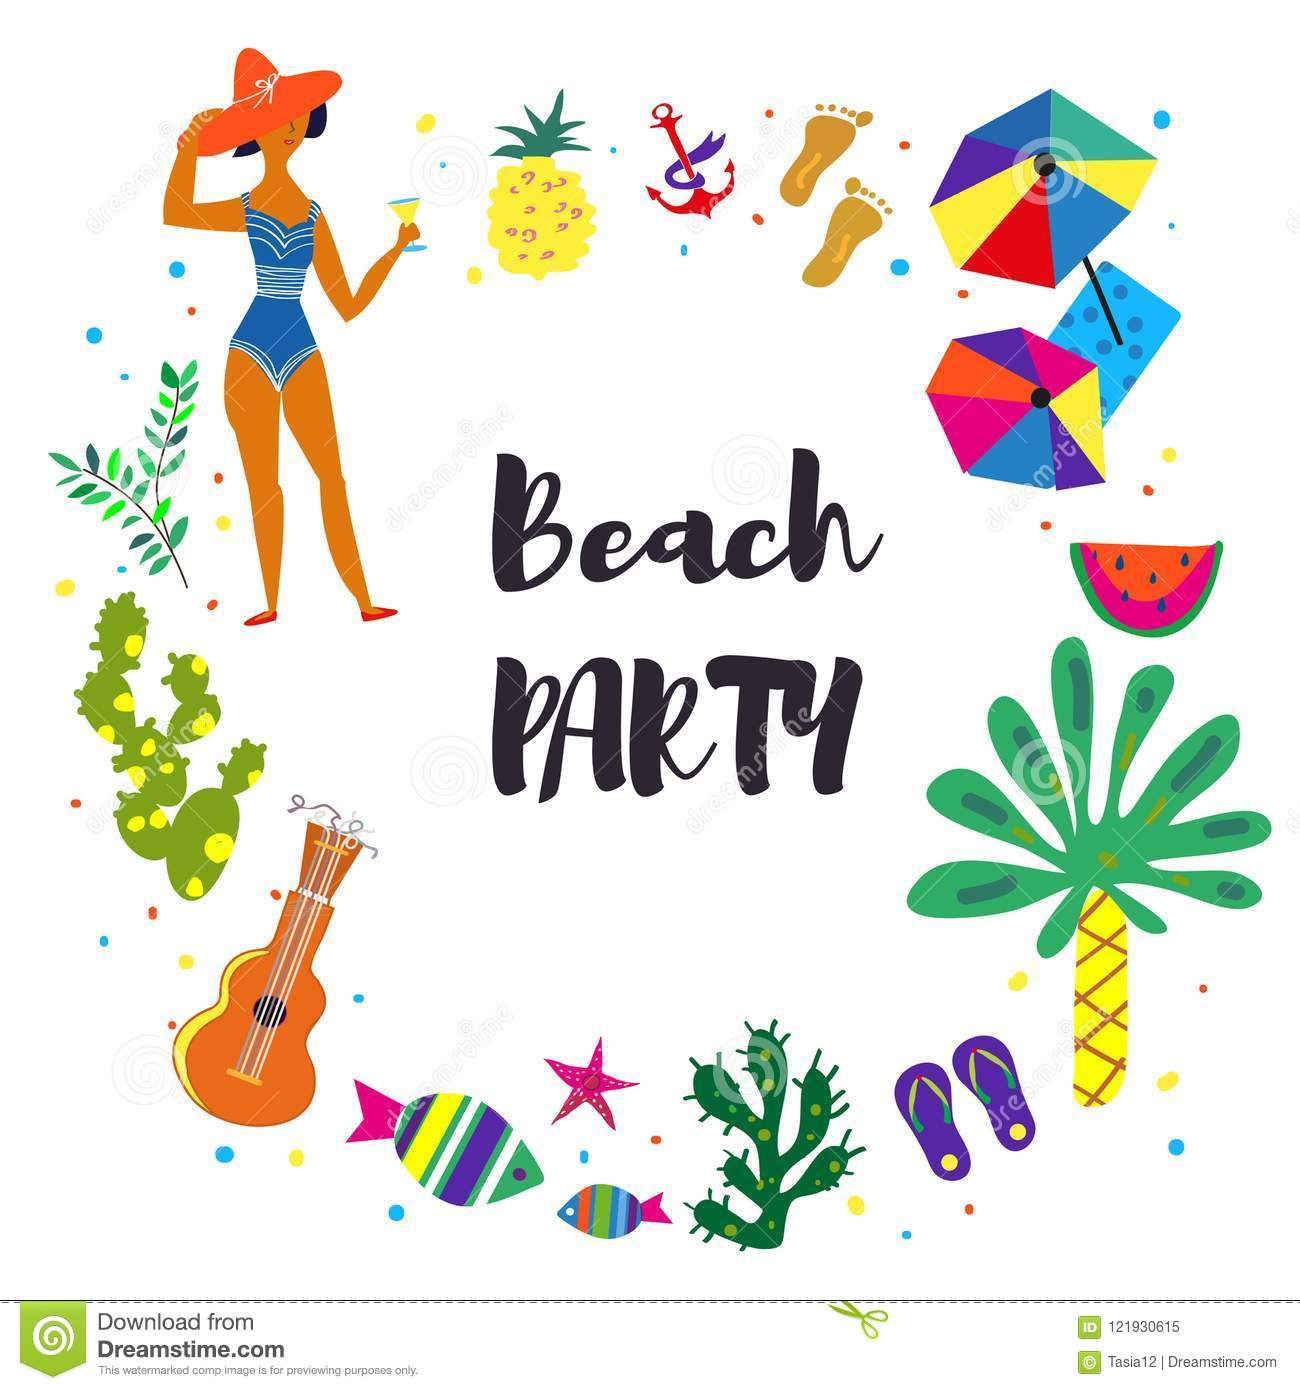 Beach Party Background For The Card Or Invitation. Vector ...